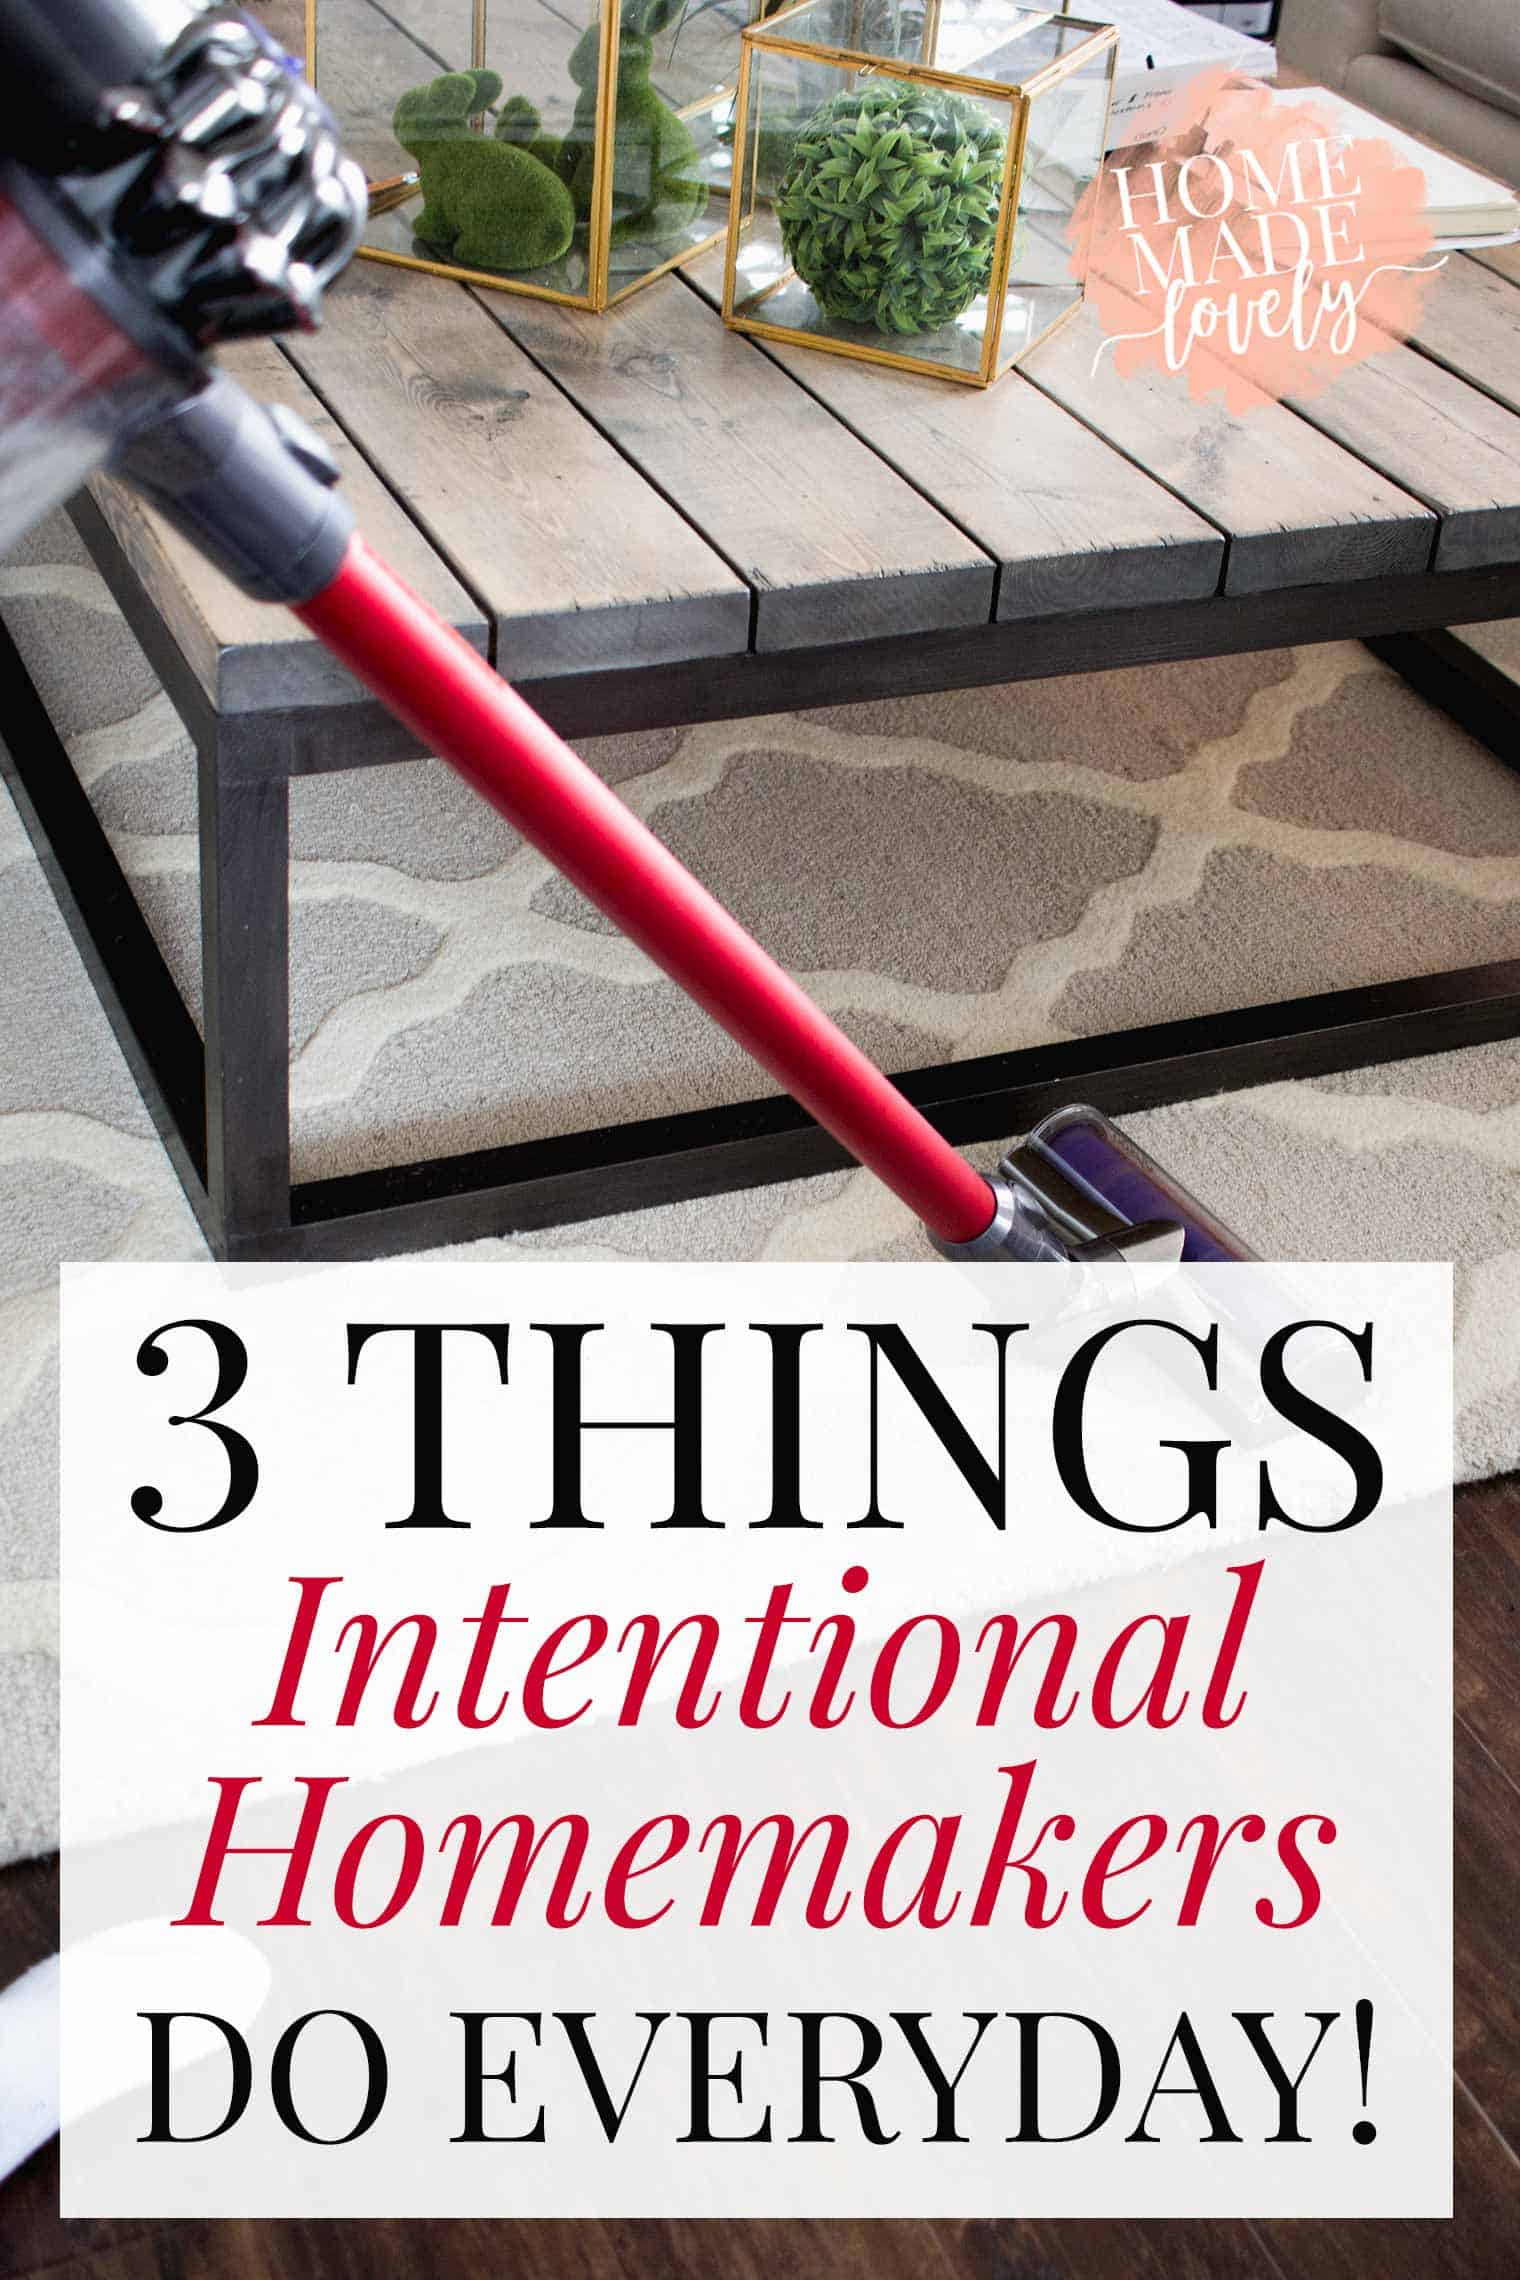 If you have been wondering what the secret to intentional homemaking is, here are 3 things intentional homemakers do every single day.